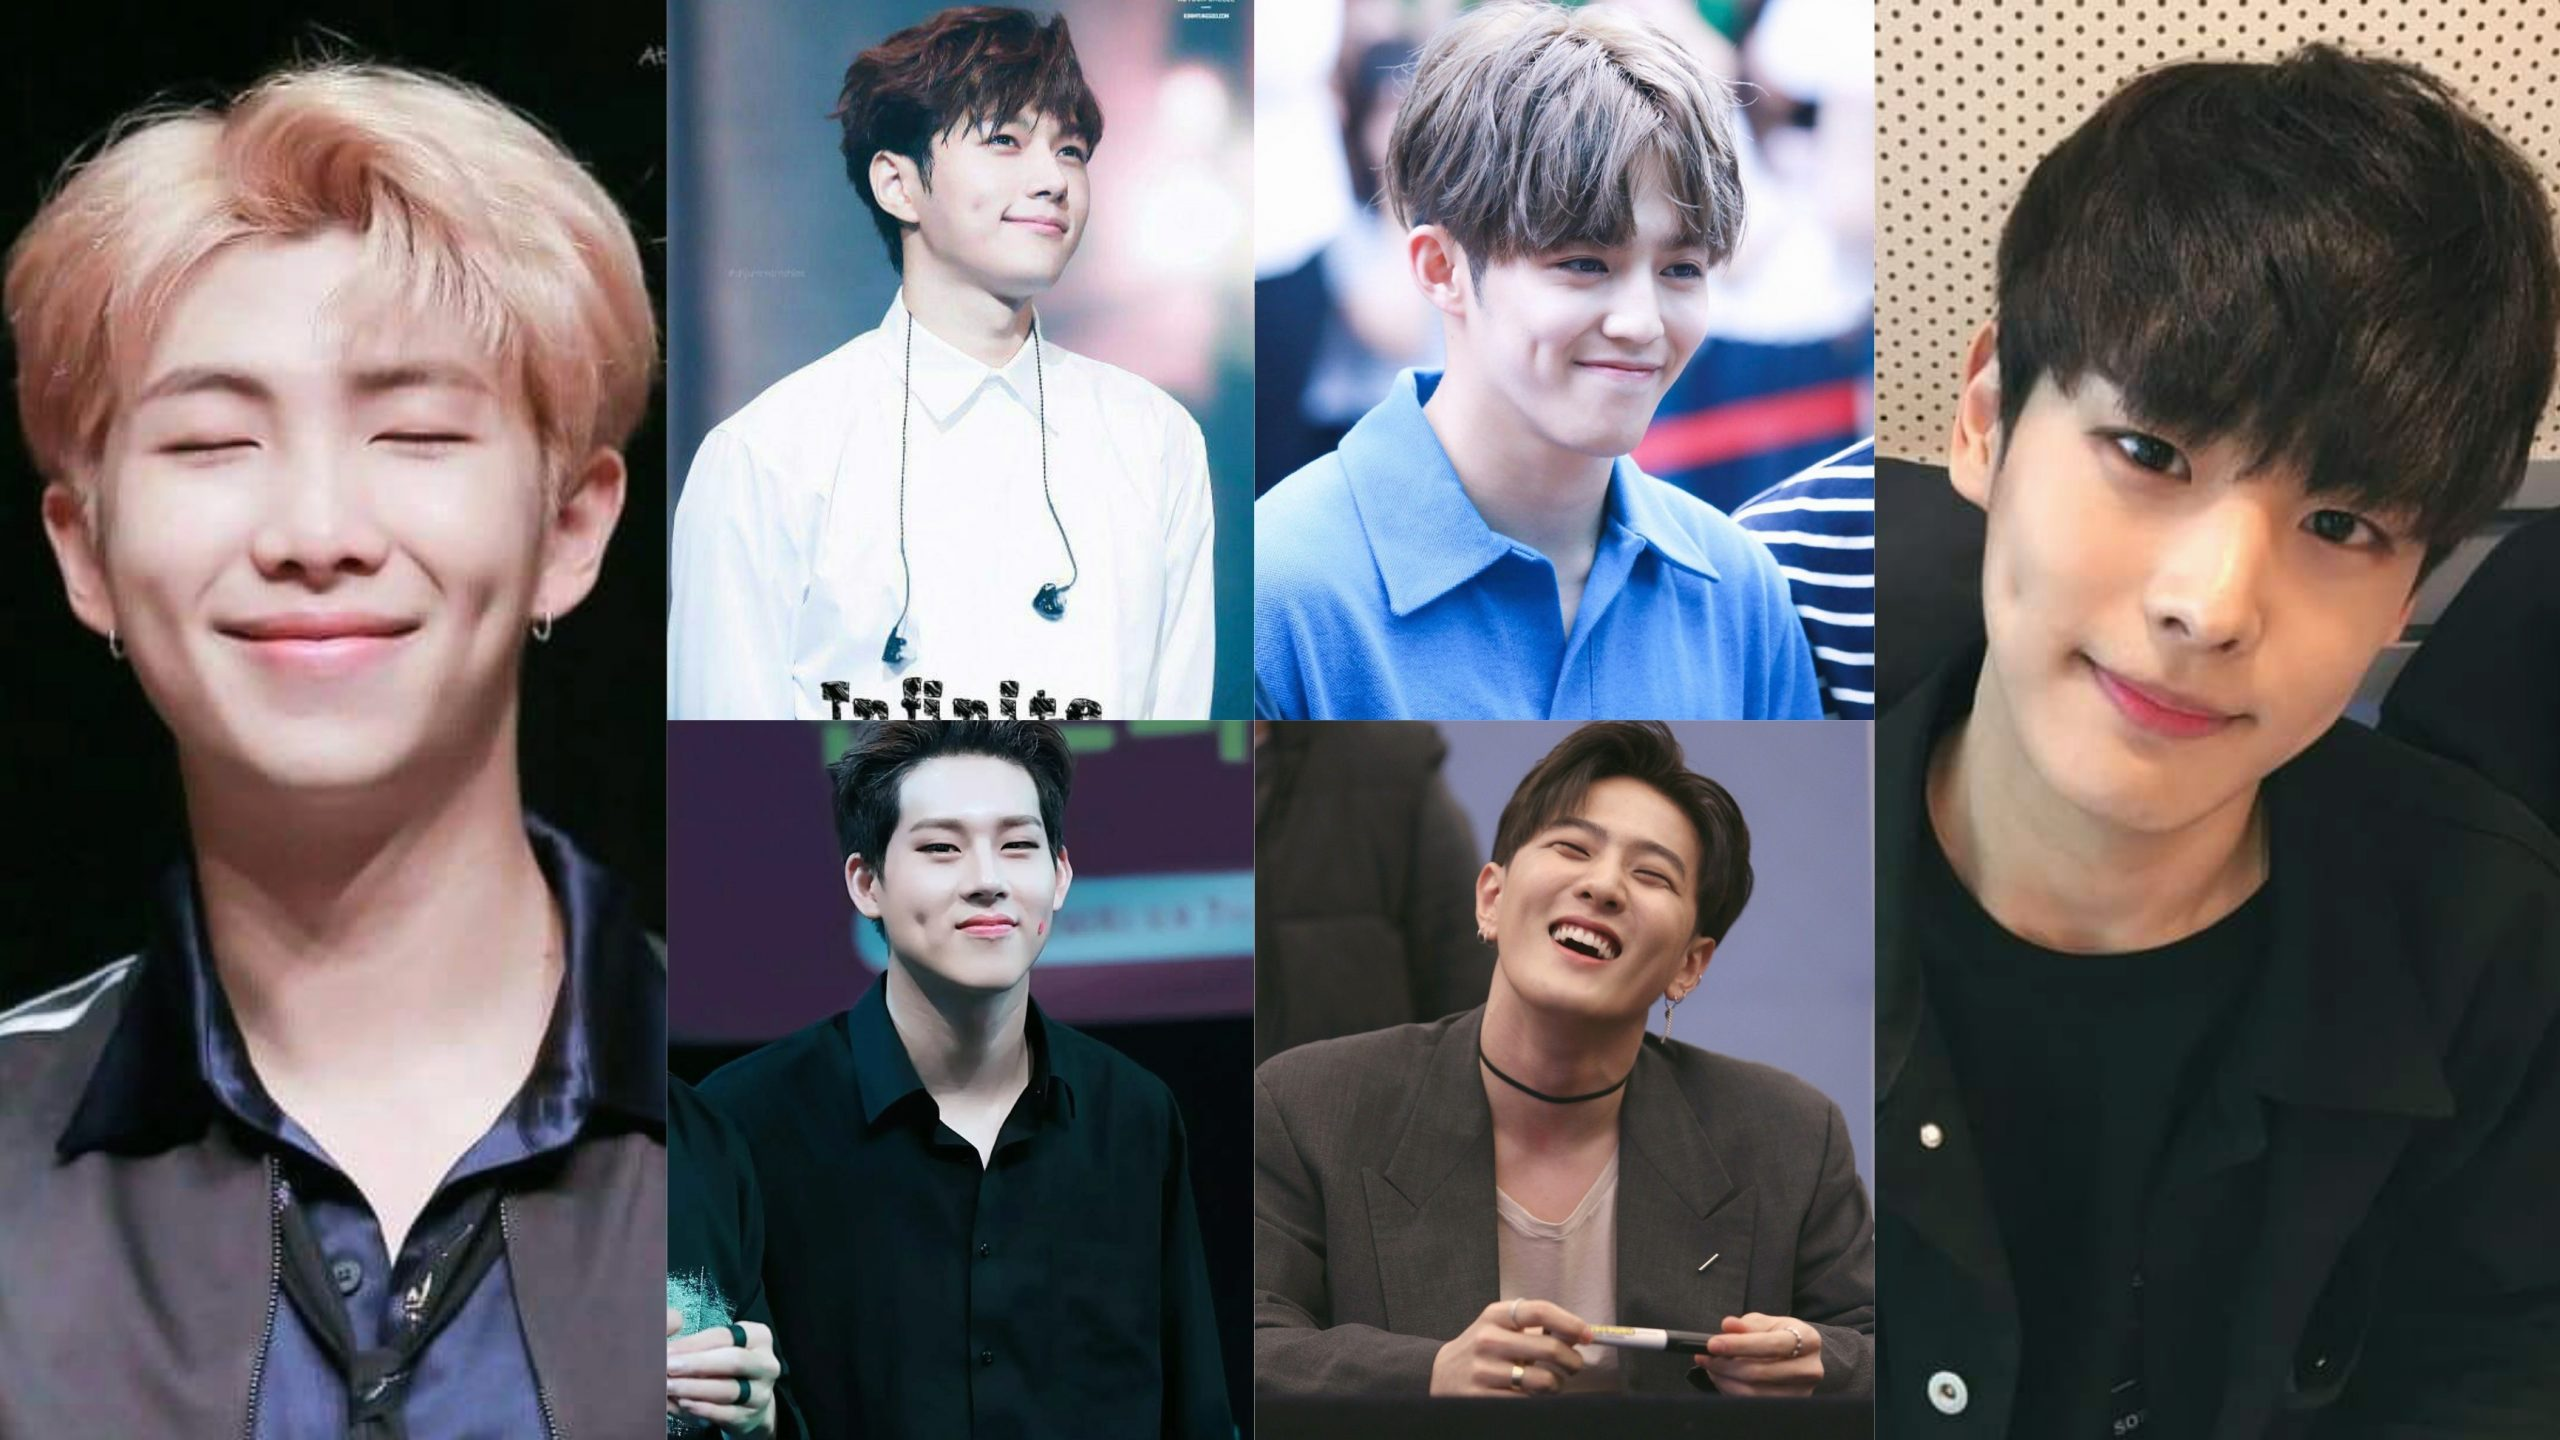 8 Popular Male Idols Who Look Absolutely Cute and Charming With Their Dimples;